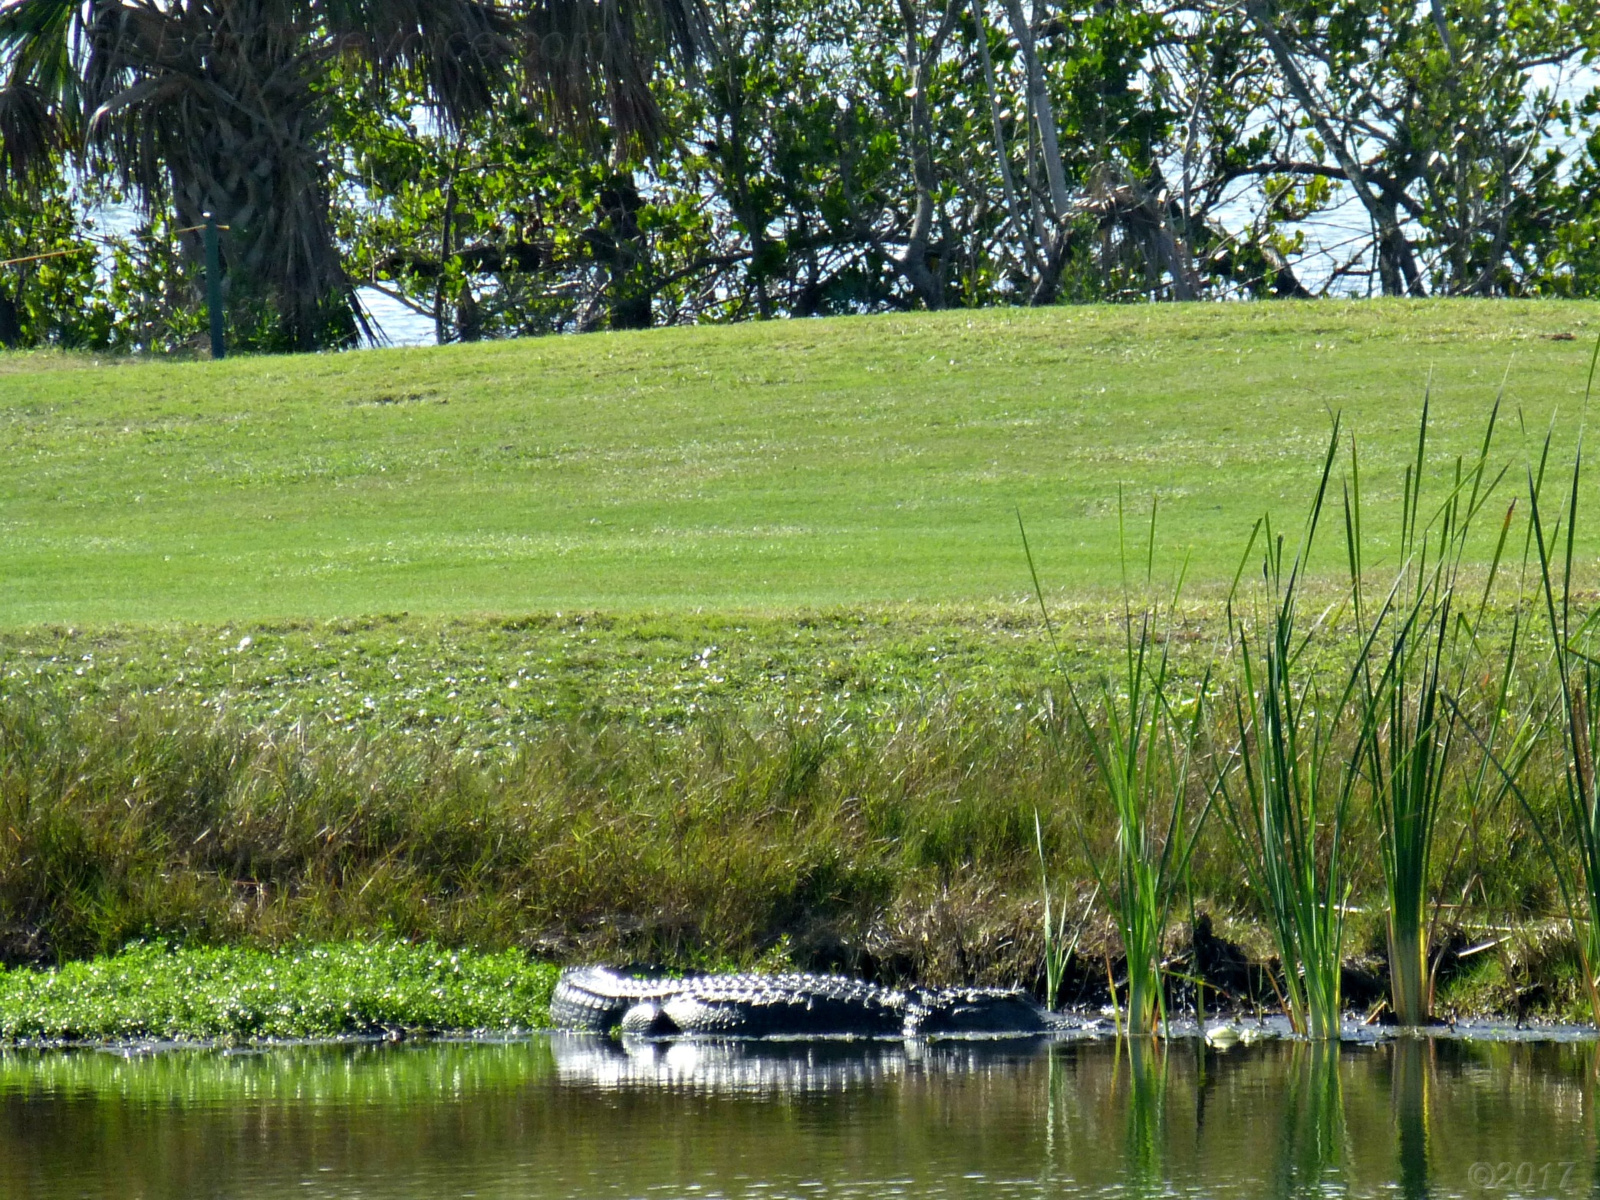 December 6, 2017 - alligator on Florida golf course